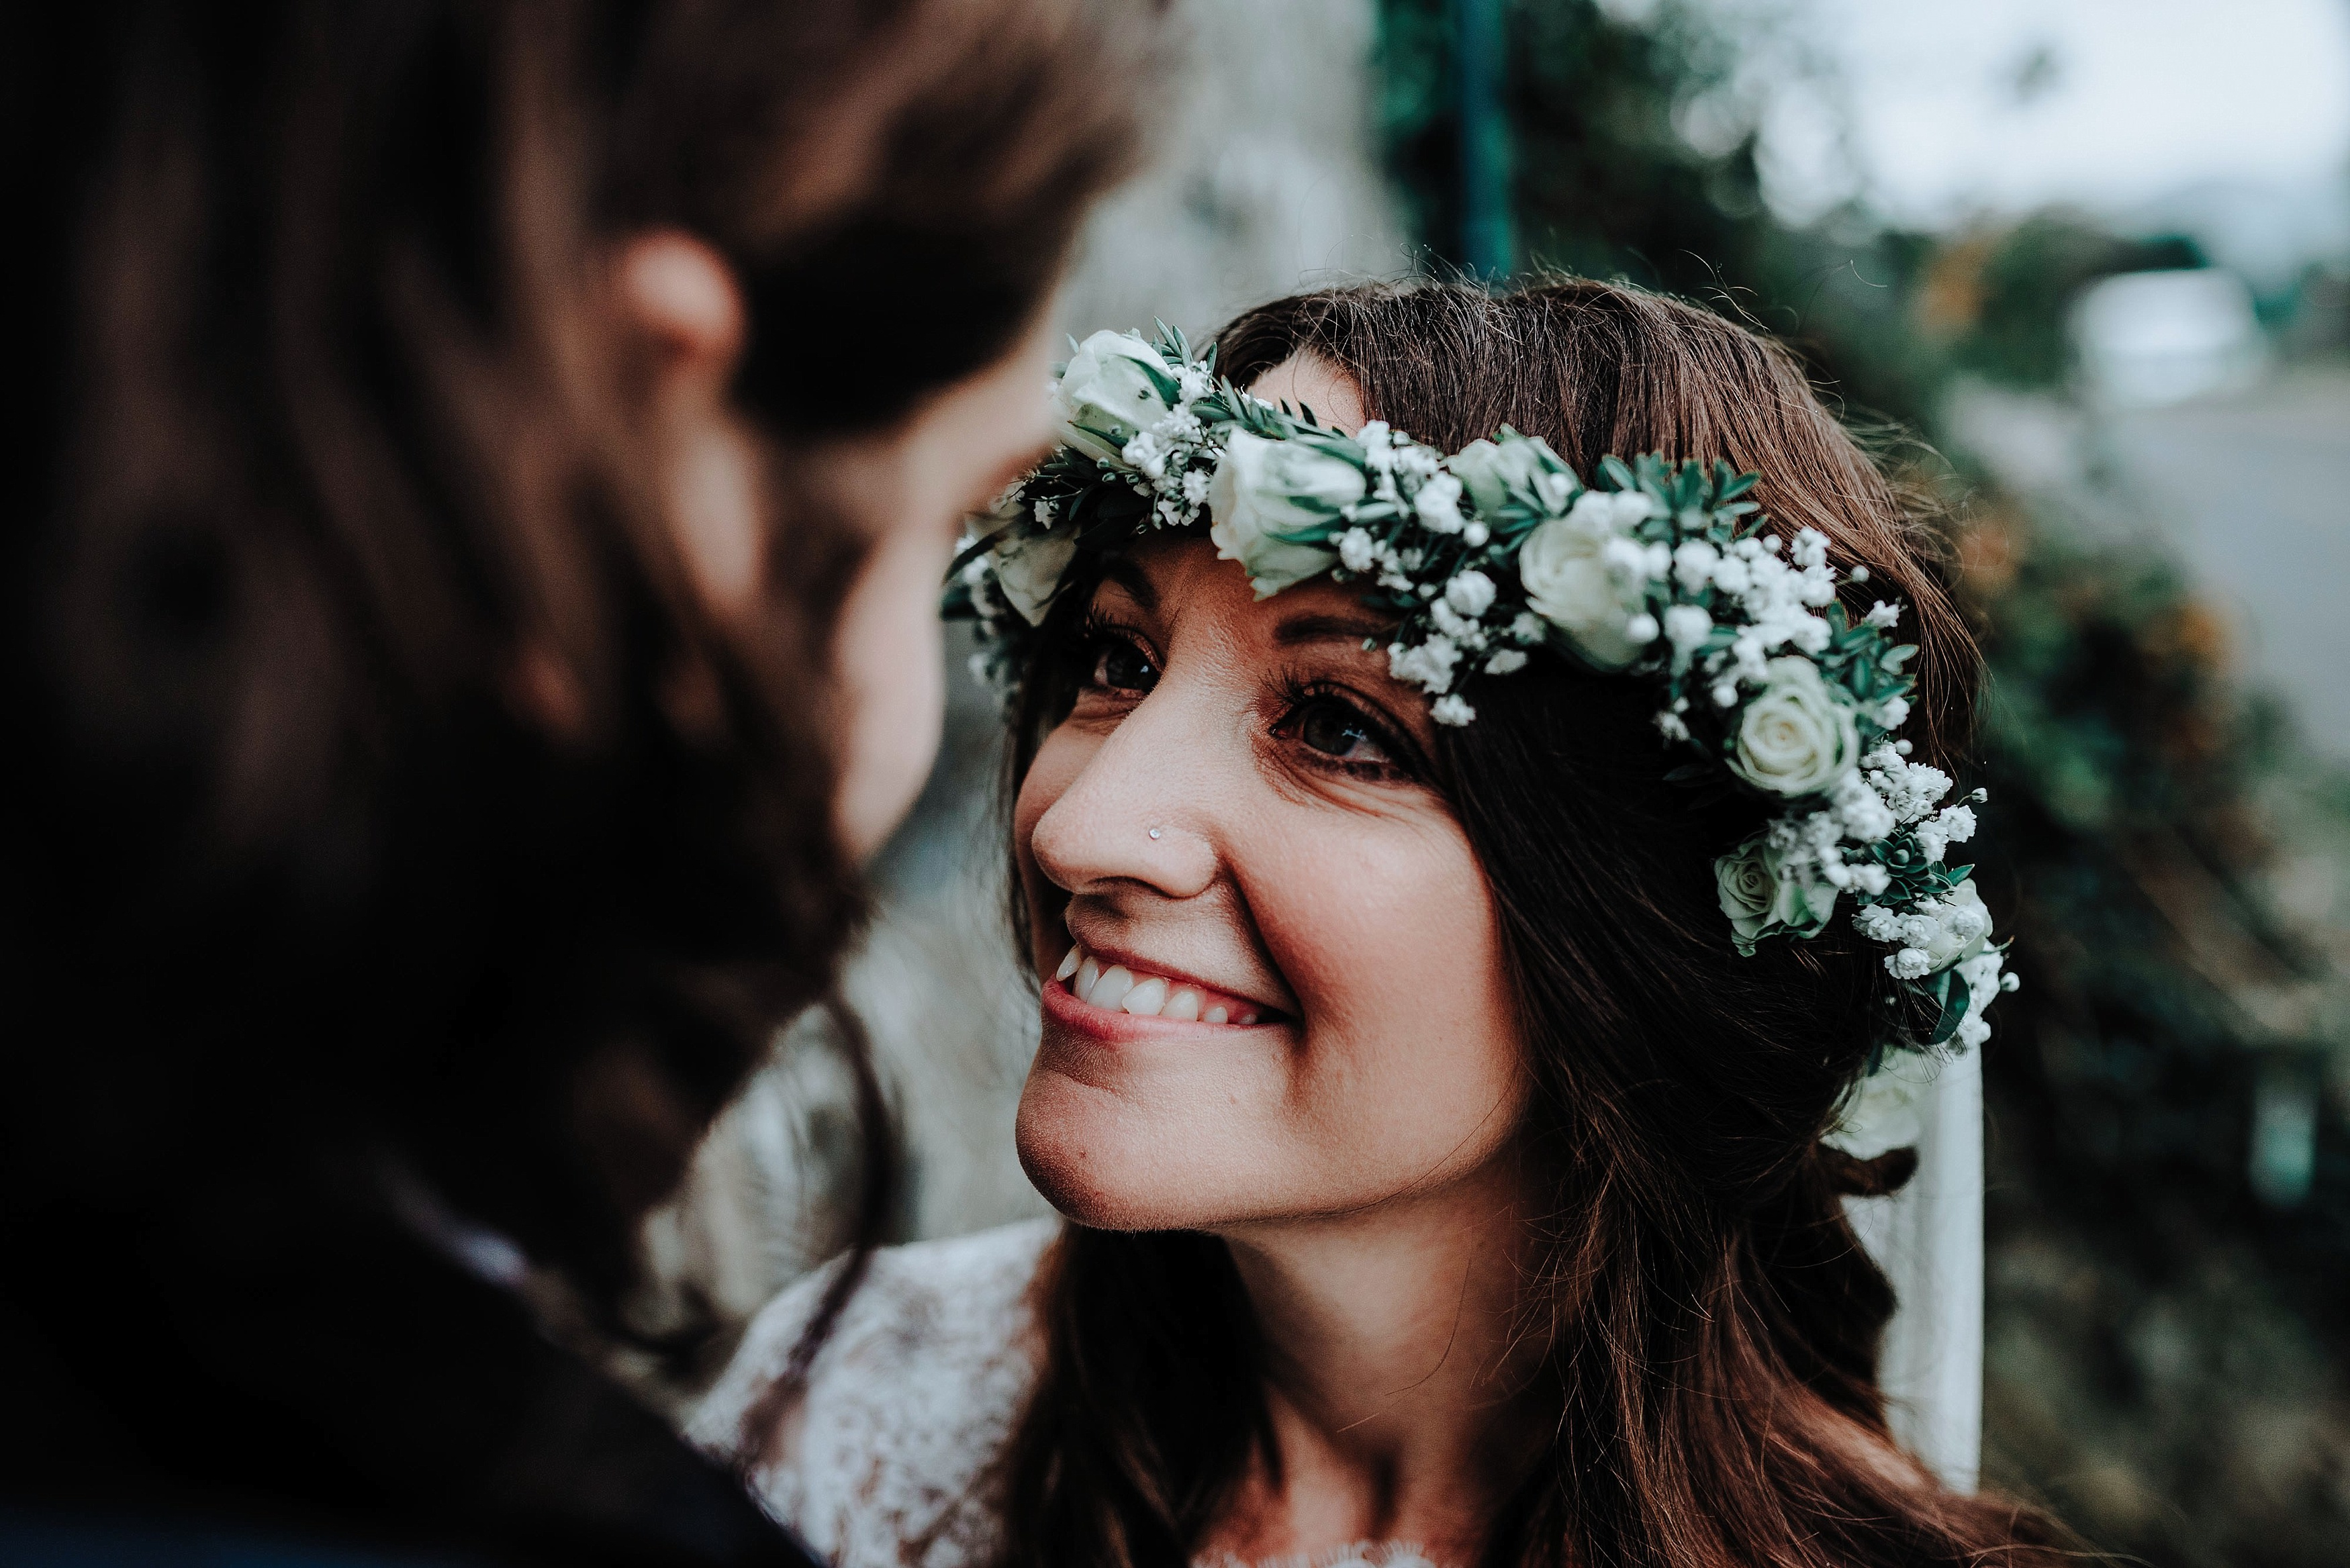 Smiling bride at her rustic welsh wedding